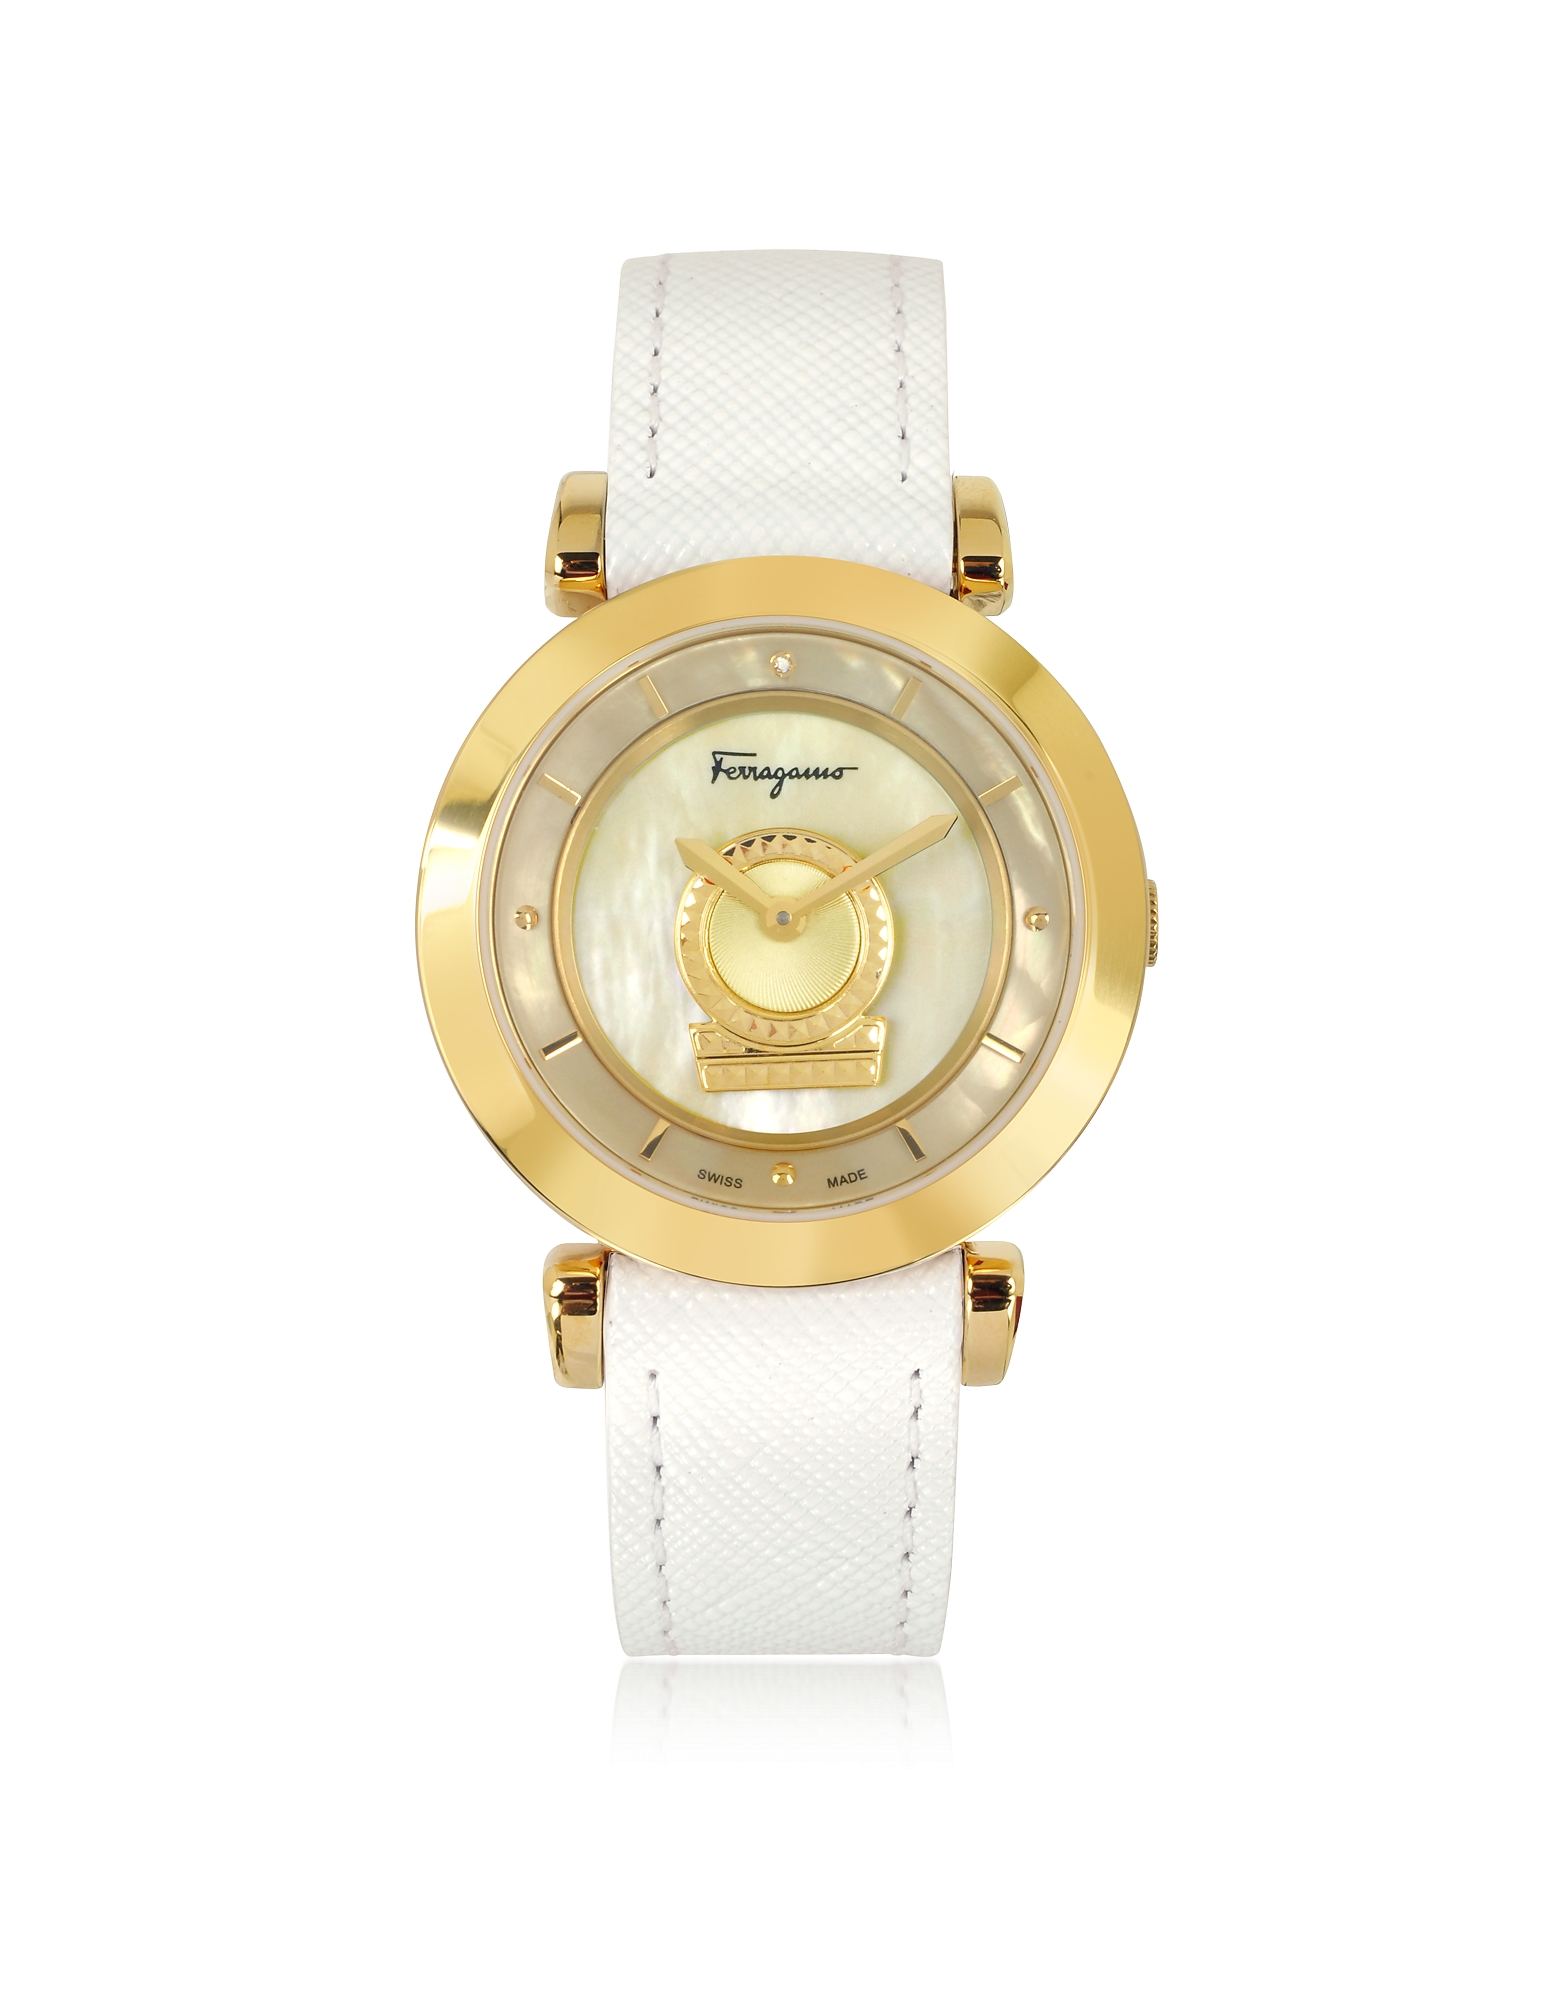 Salvatore Ferragamo  Women's Watches Minuetto Gold IP Stainless Steel Case and White Leather Strap Women's Watch